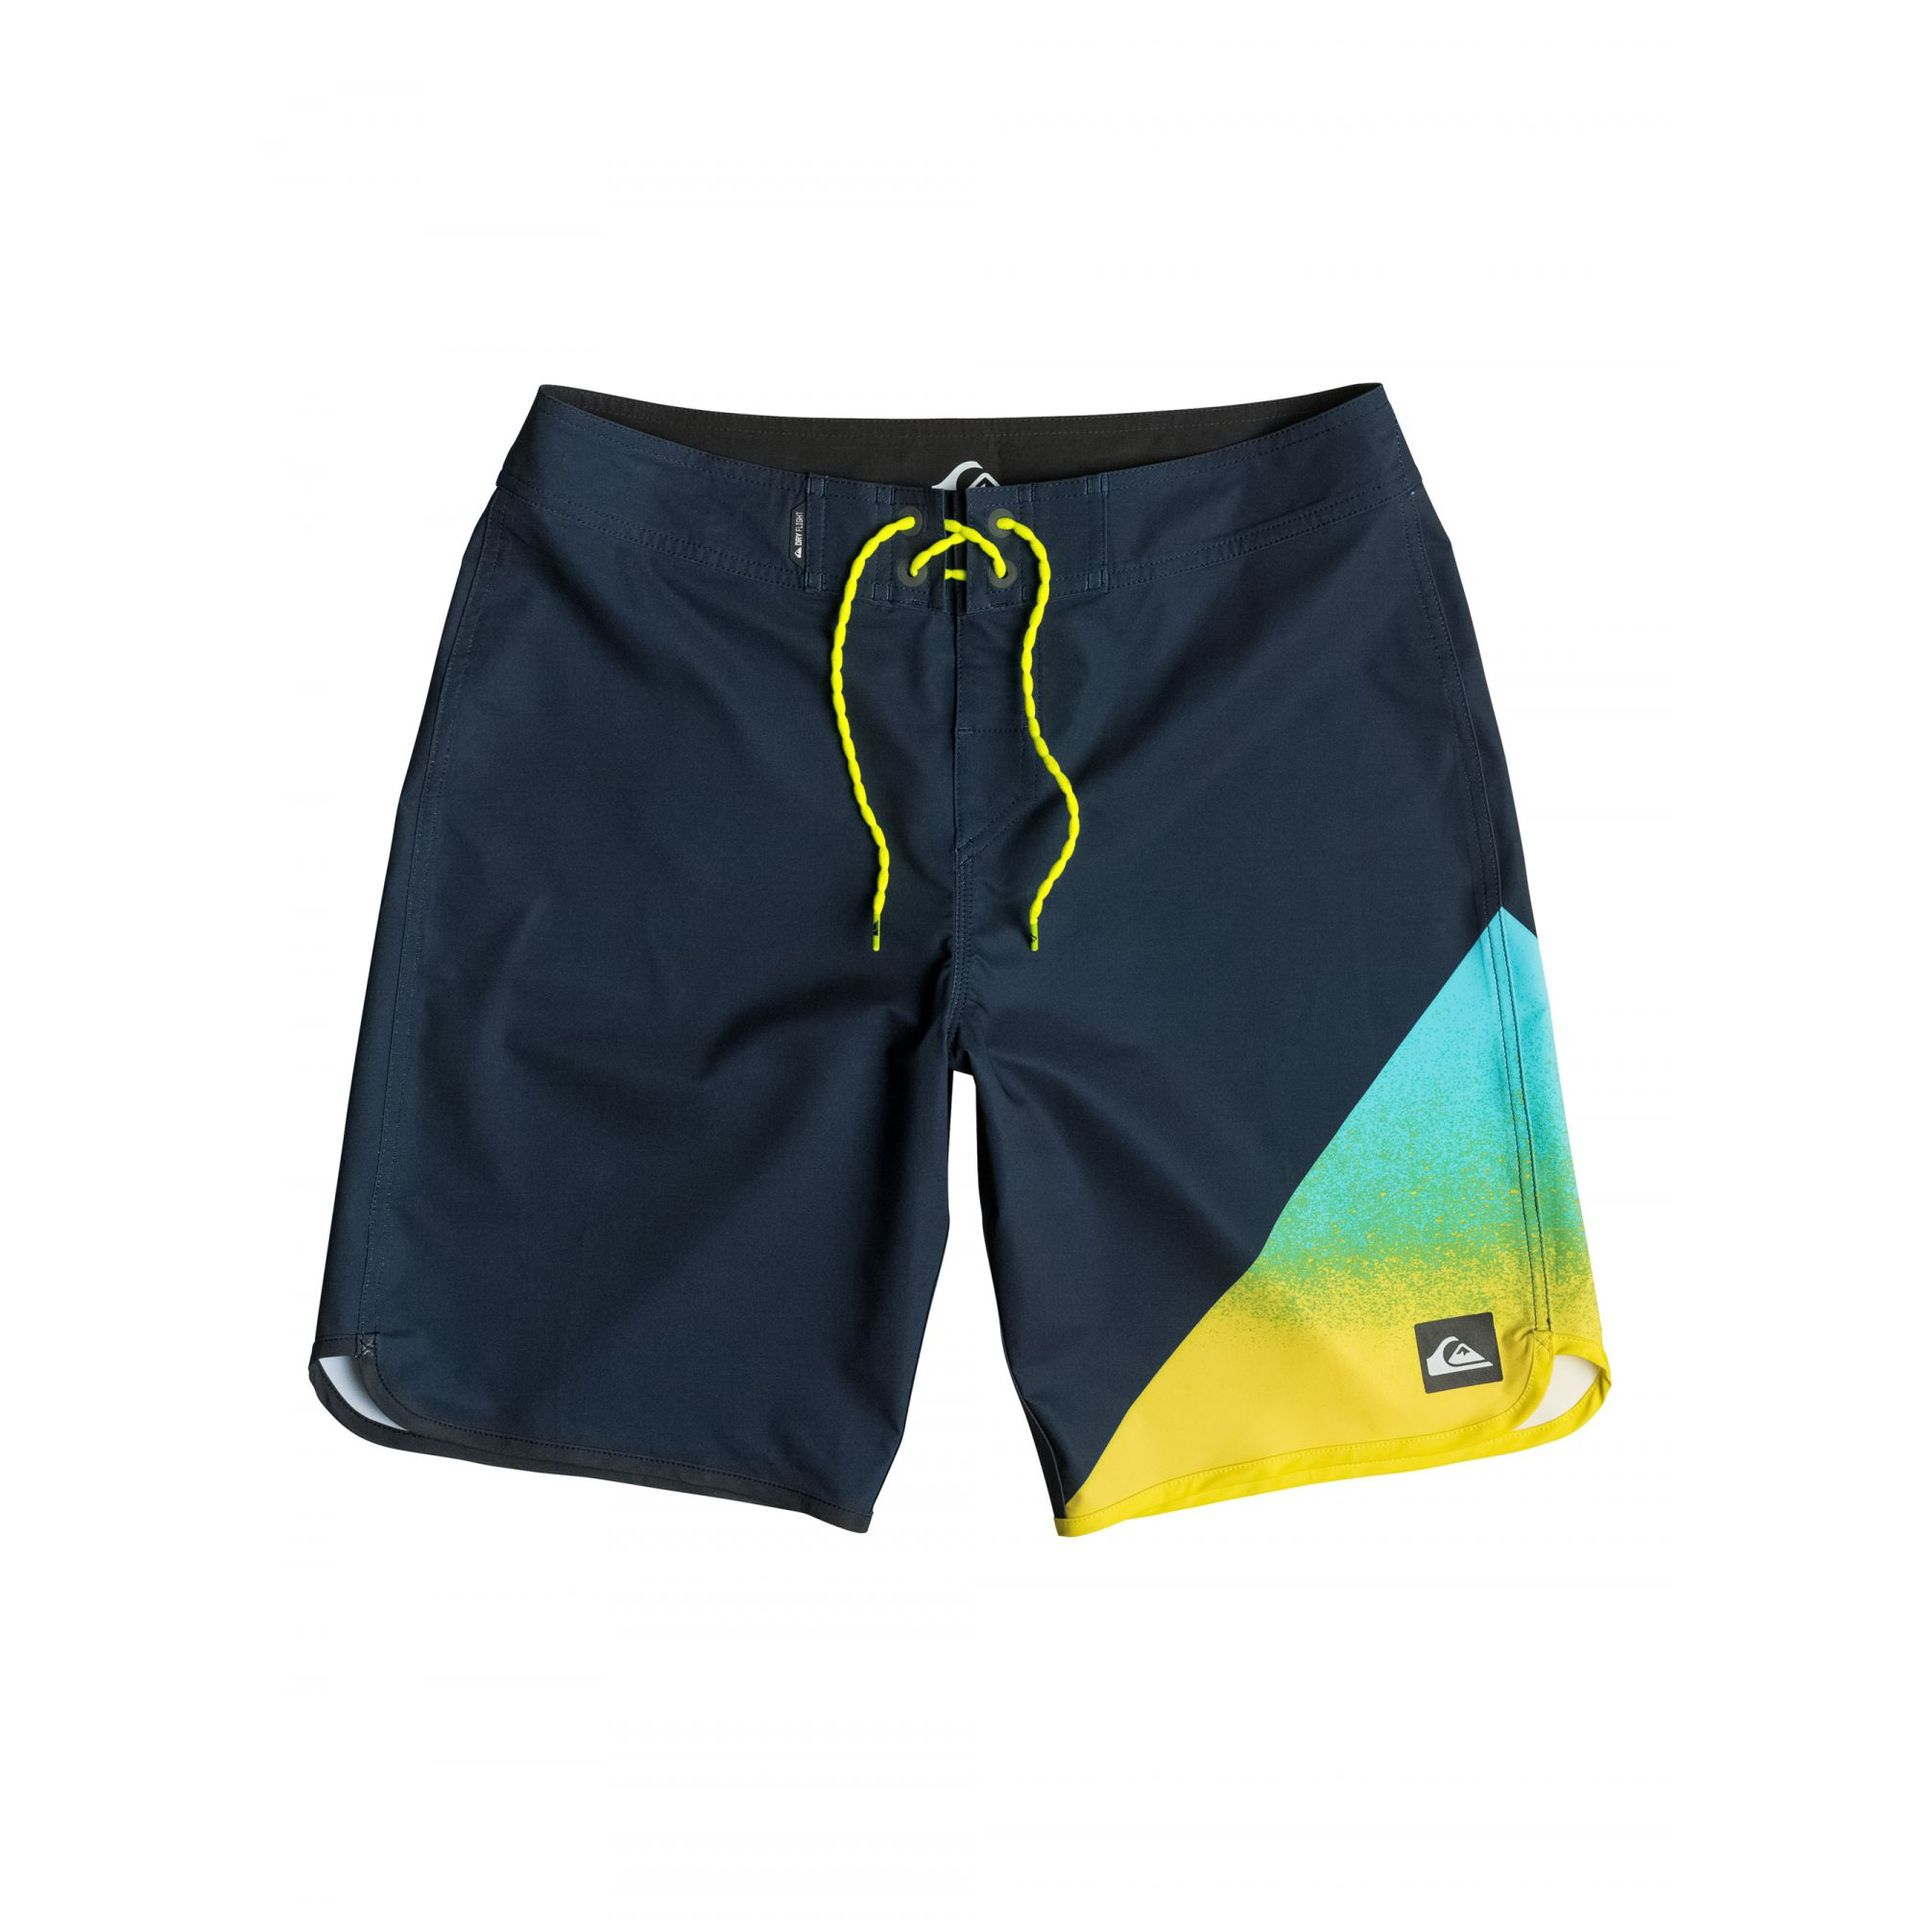 BOARDSHORTY QUIKSILVER AG47 NEW WAVE 19 BYJ6